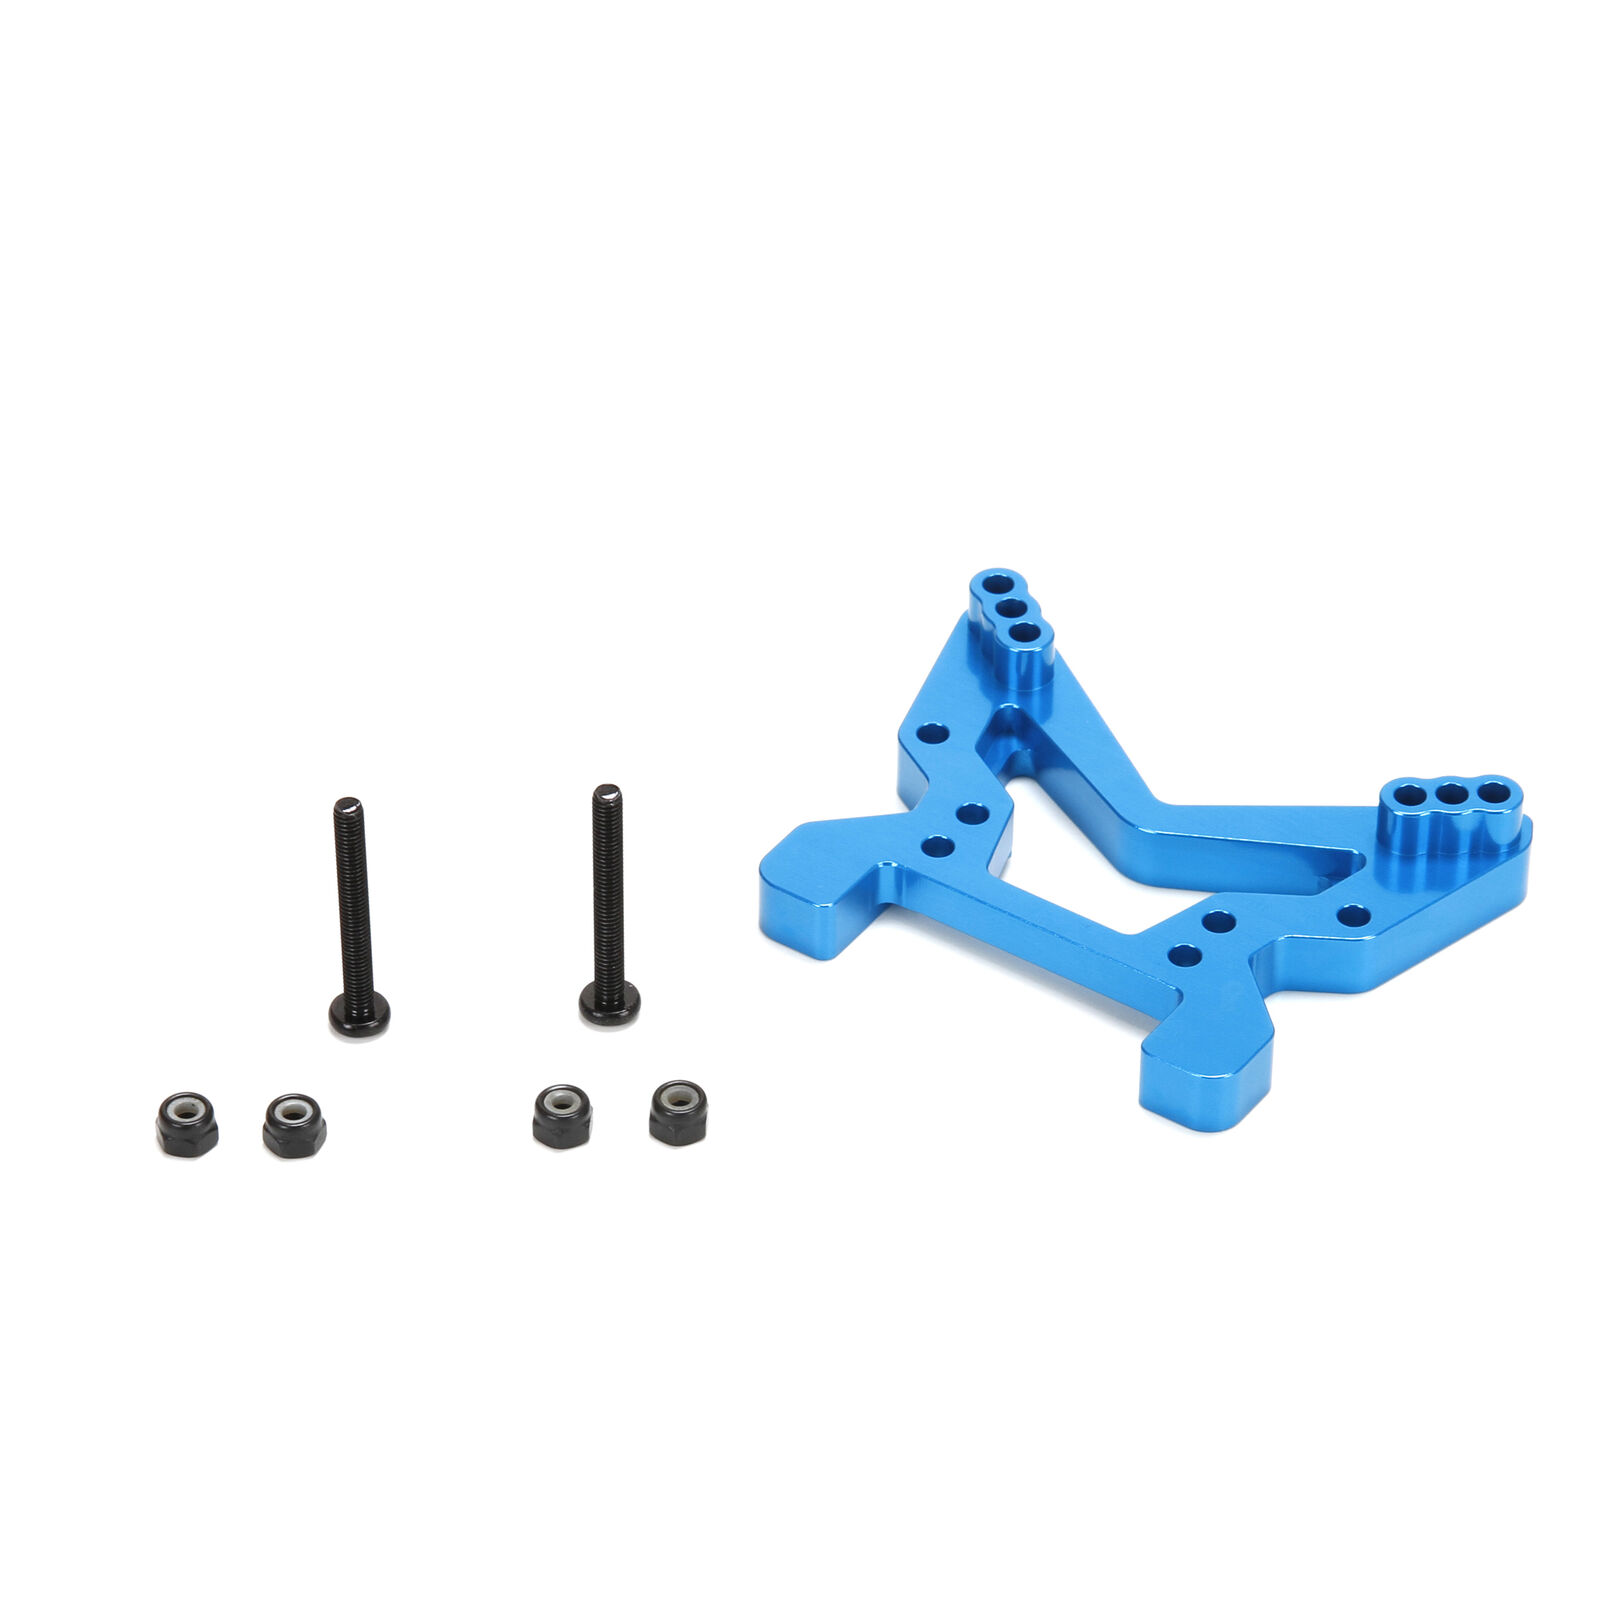 Front Shock Tower, Aluminum: All ECX 1/10 4WD